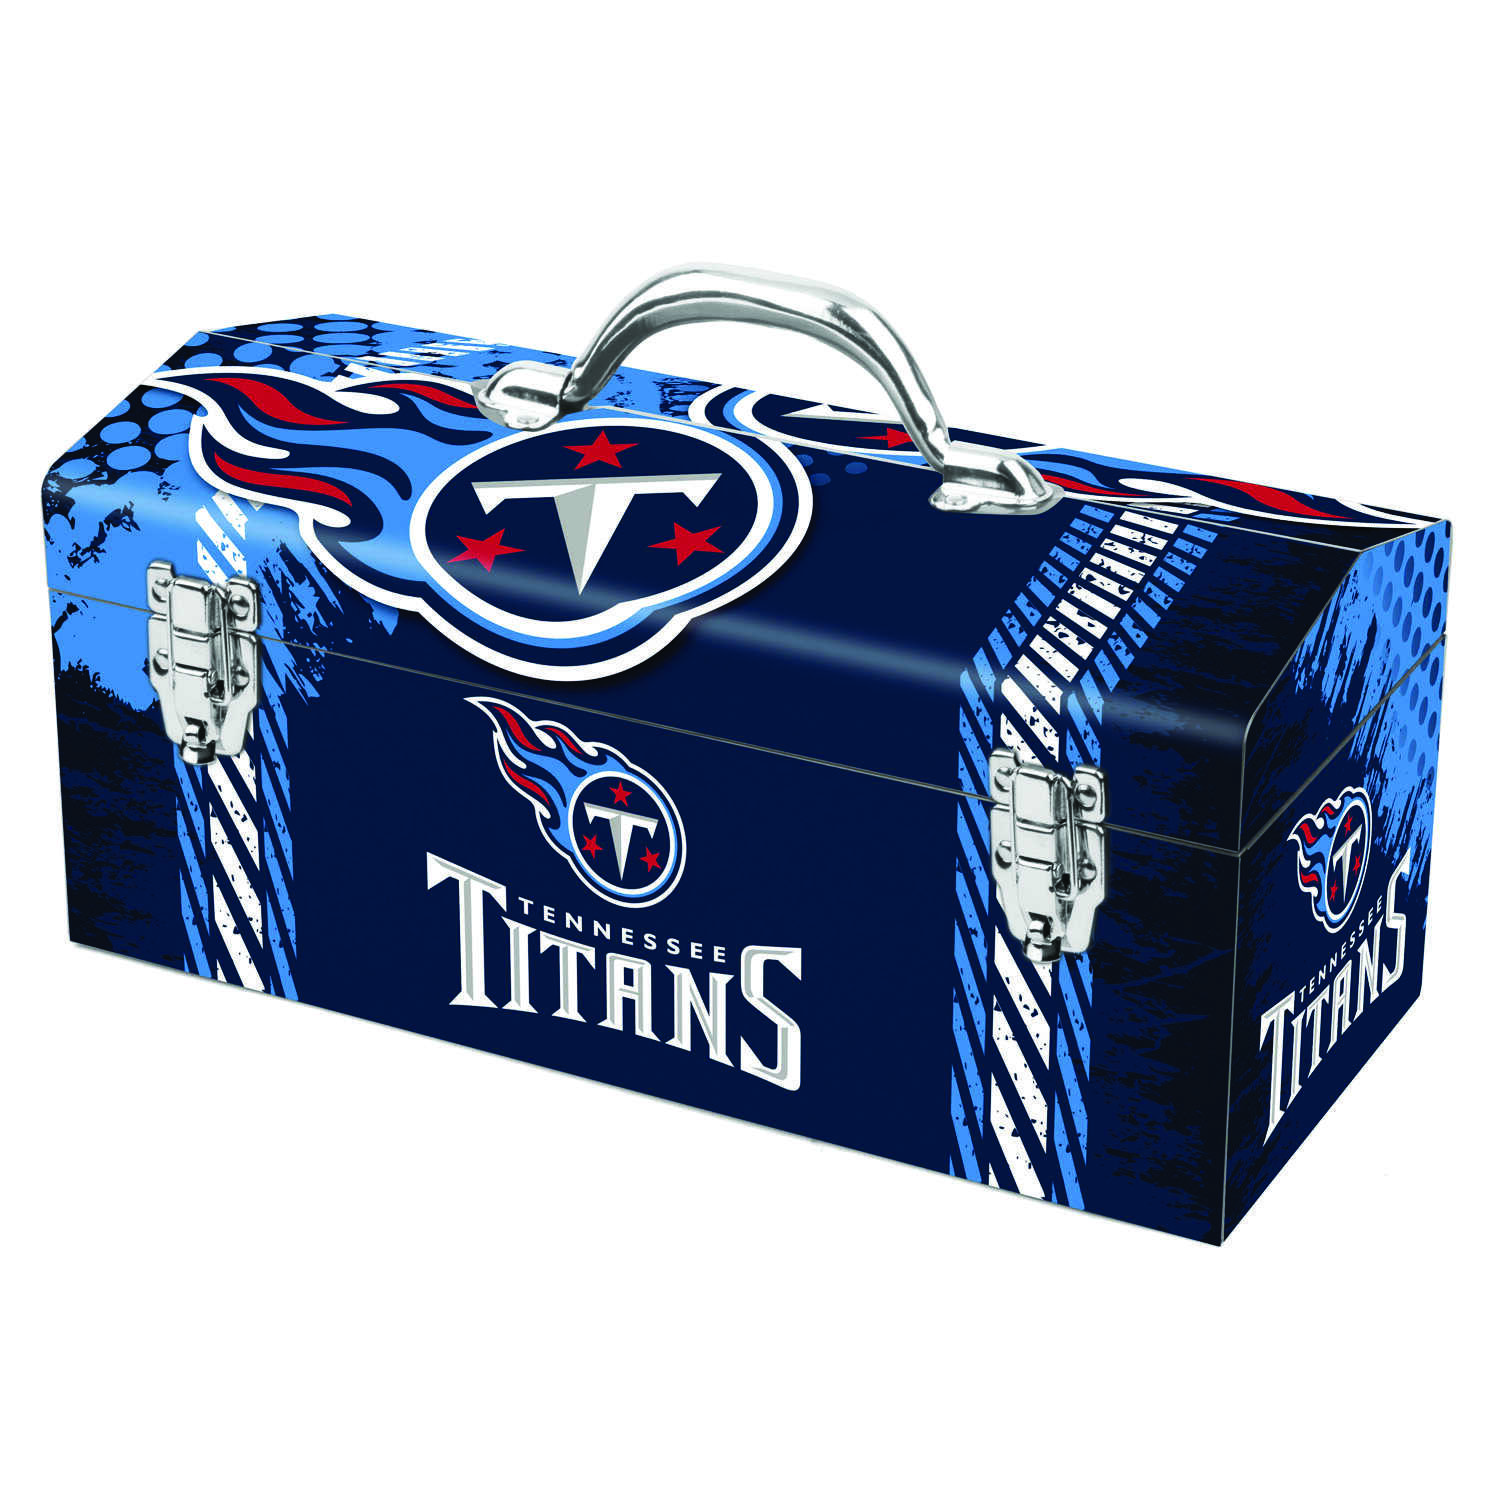 Sainty International  16.25 in. Steel  Tennessee Titans  Art Deco Tool Box  7.1 in. W x 7.75 in. H